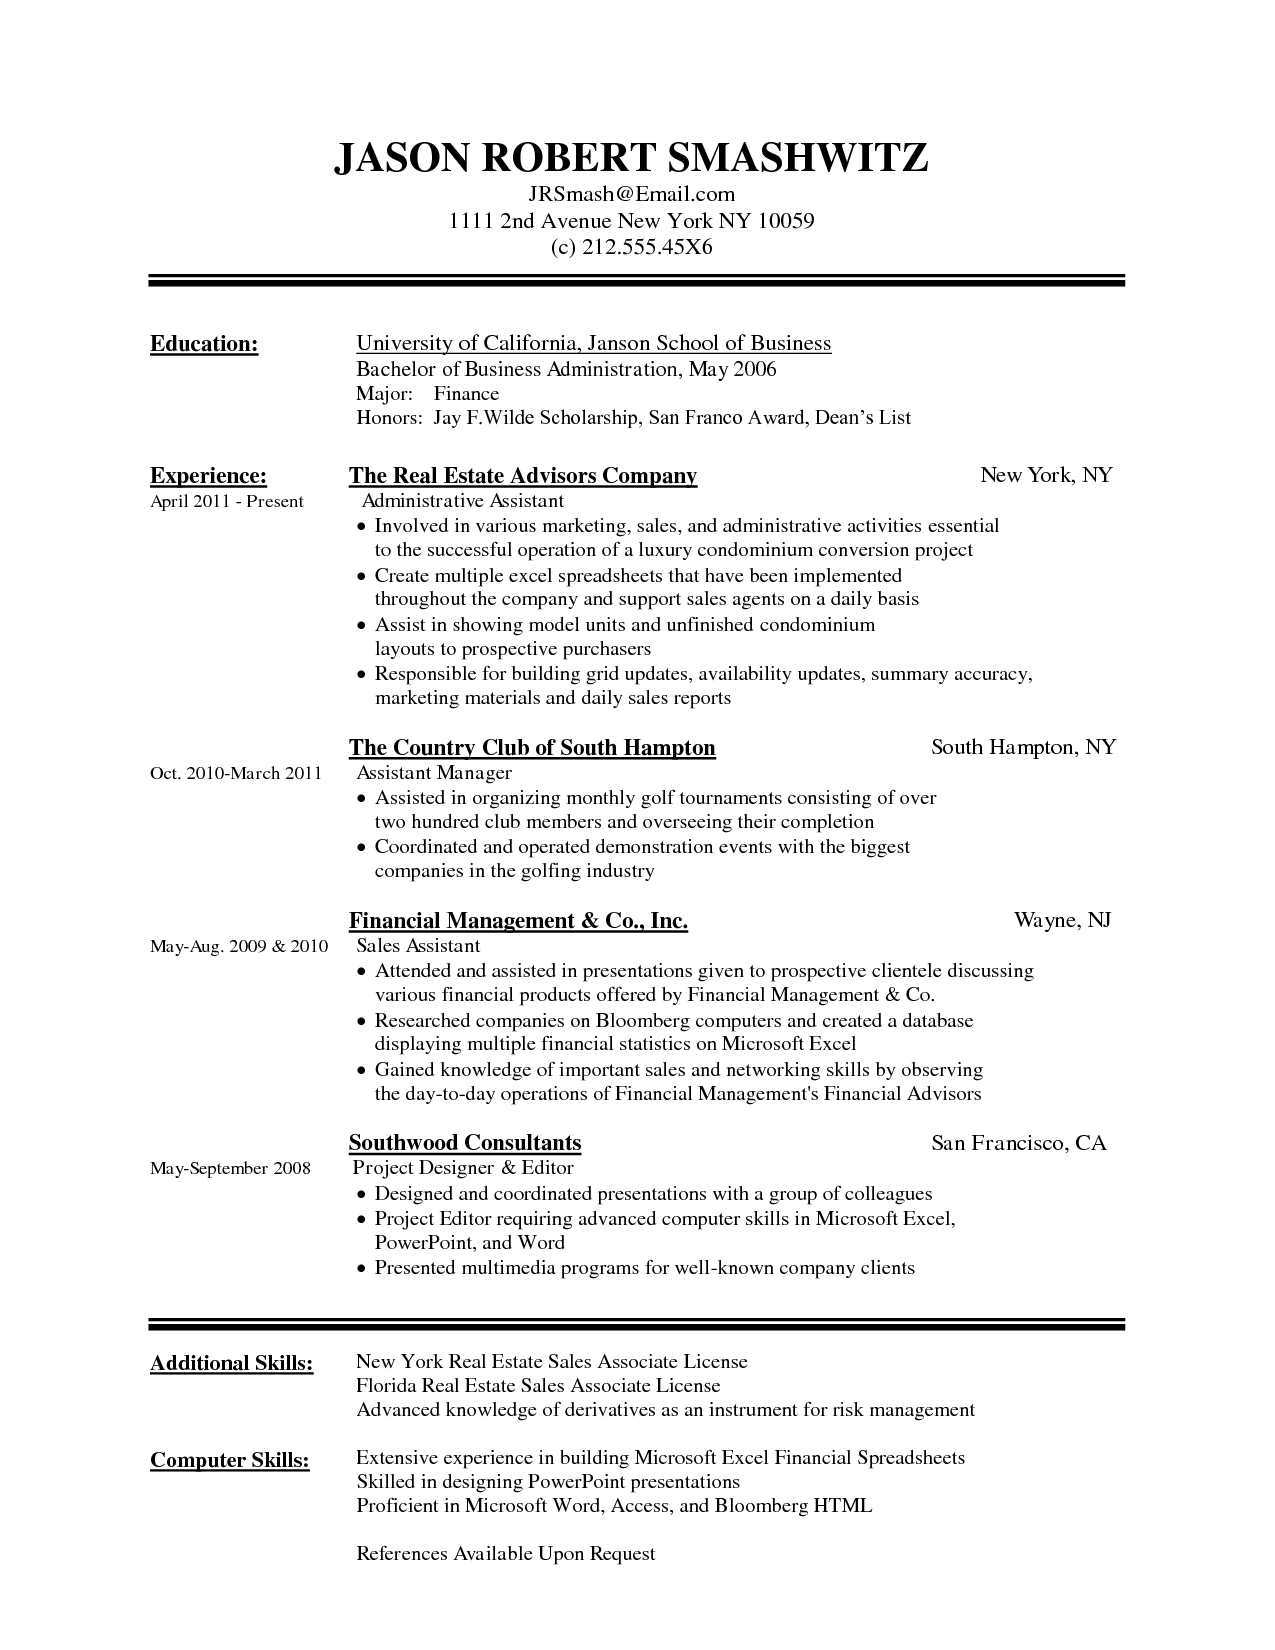 free resume templates microsoft word functional resume cv traditional design word template resume templates word fotolipcom - Free Resume Templates In Word